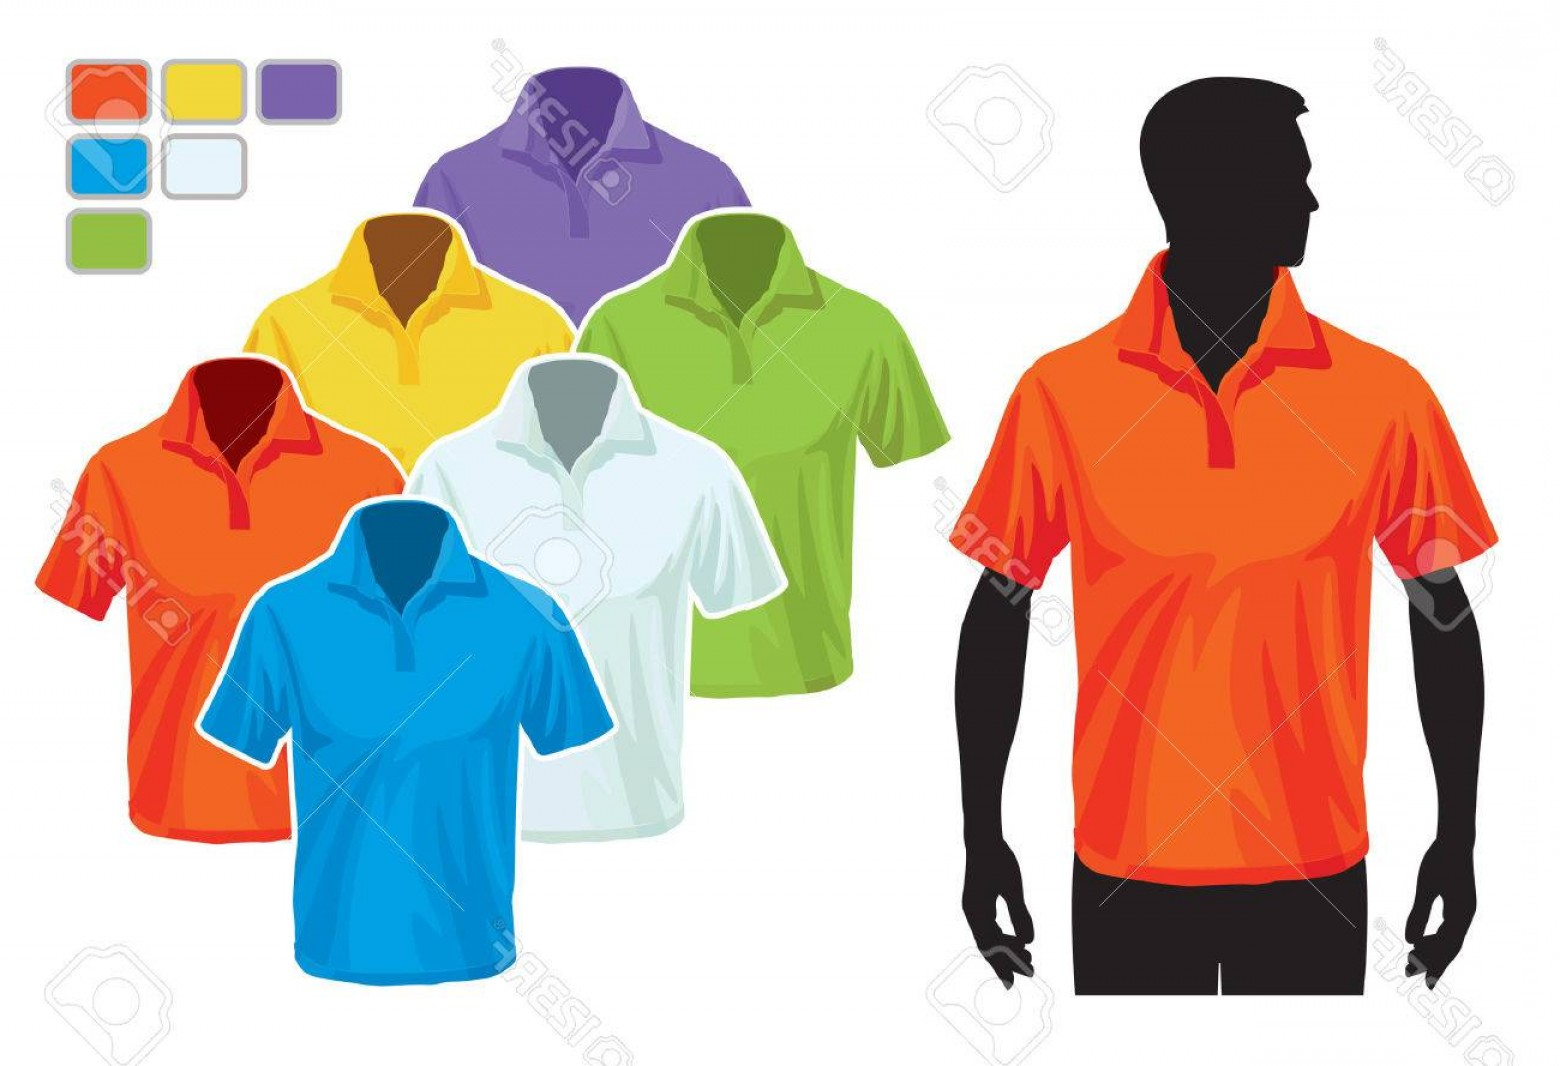 Vector Pocket Silhouette Shirt: Photoman Body Silhouette With Colorful Collection Of Polo Shirts